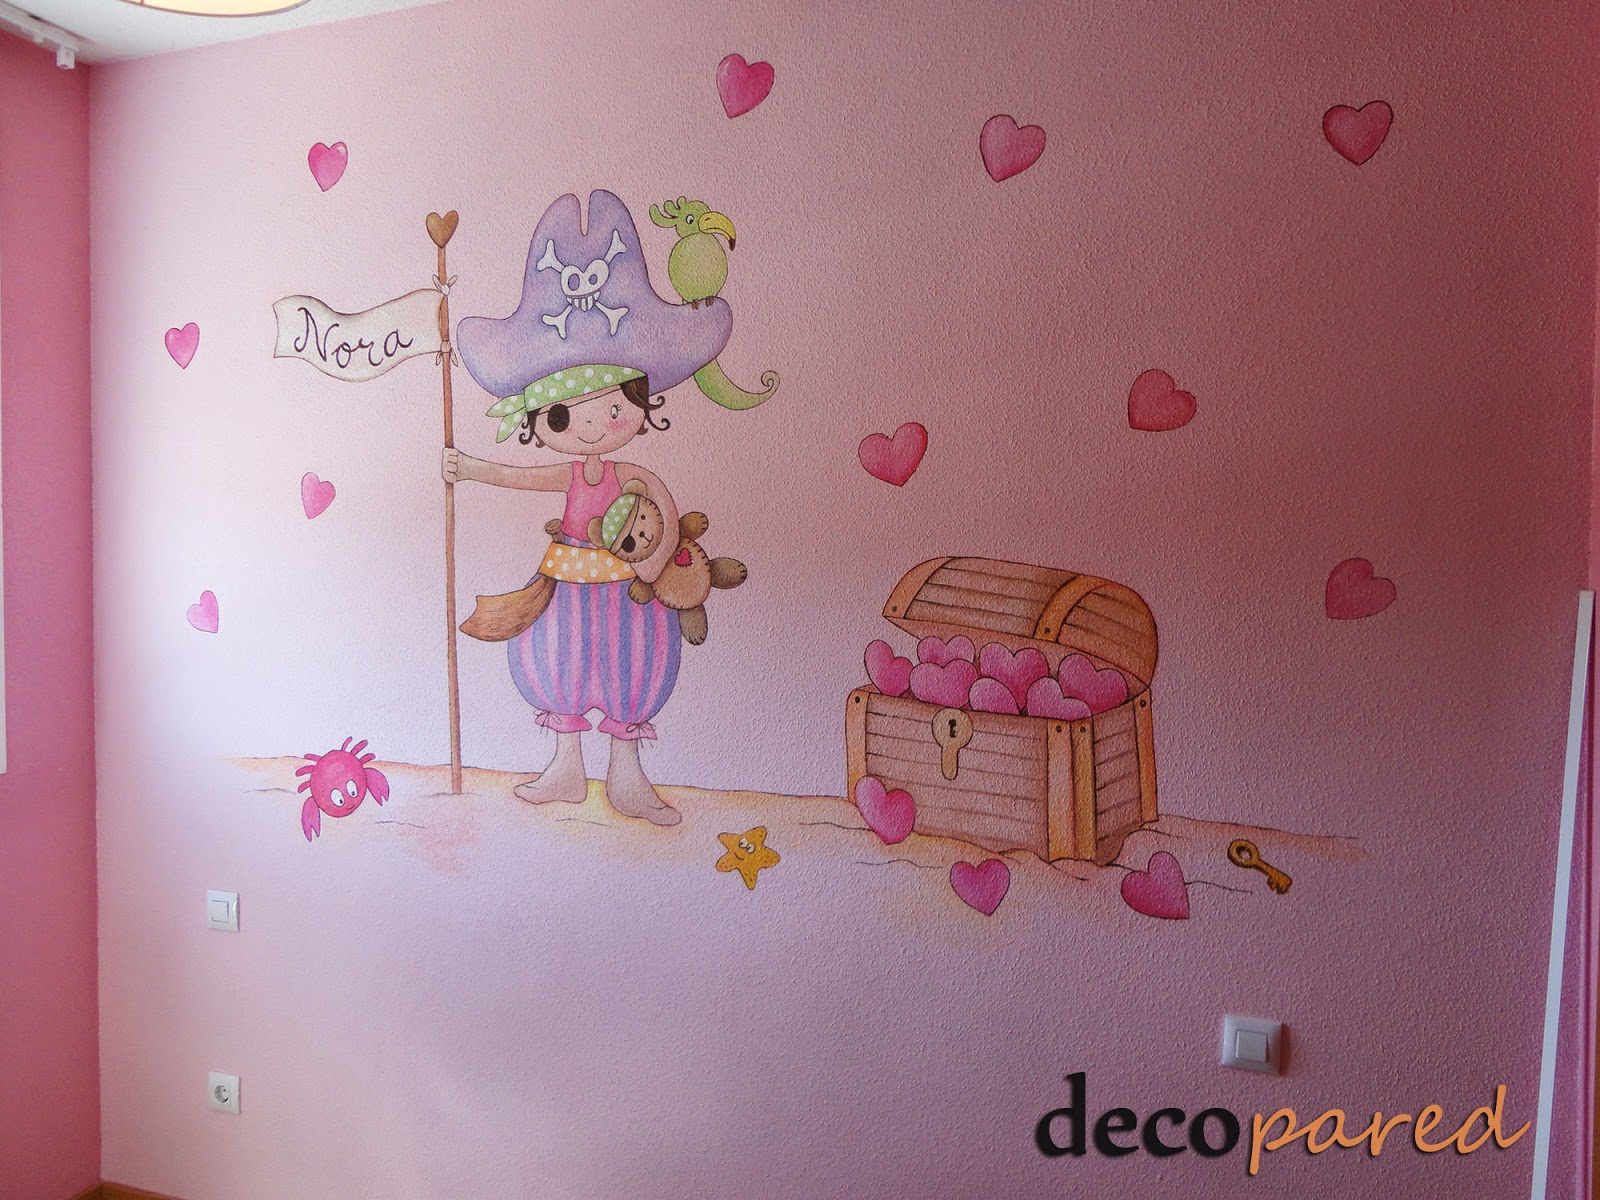 Decopared murales infantiles de piratas para los peques for Ideas para decorar paredes infantiles